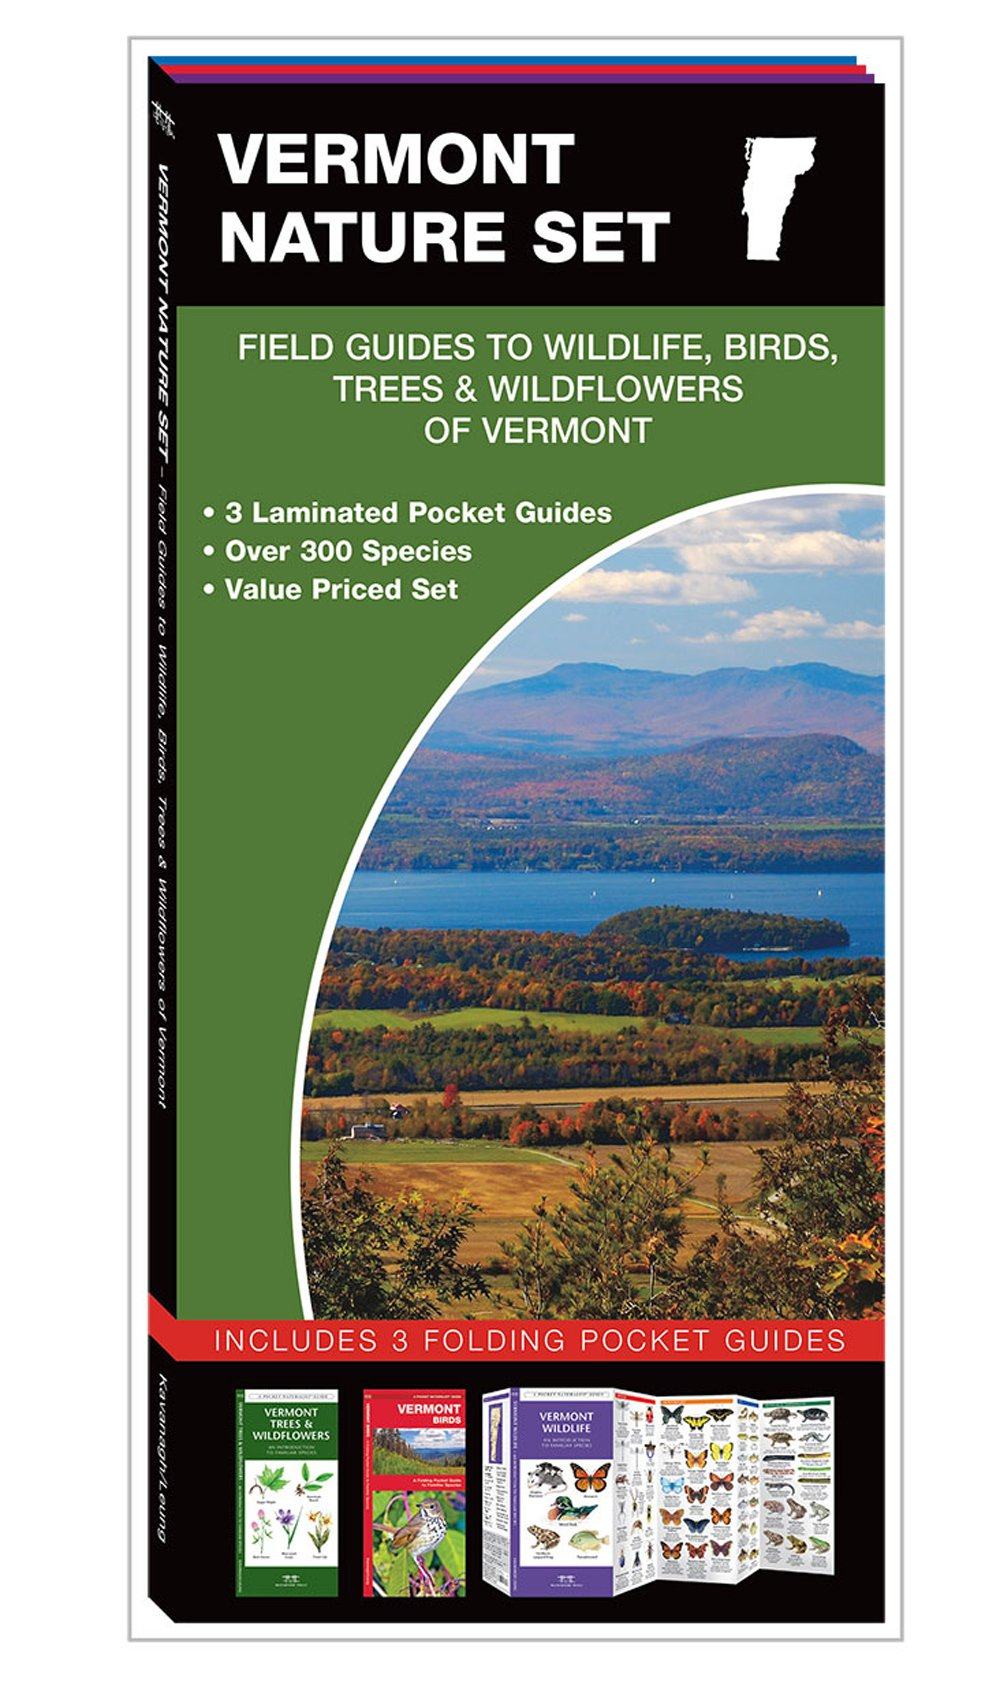 Vermont Nature Set: Field Guides to Wildlife, Birds, Trees & Wildflowers (Pocket Naturalist® Guide Set)